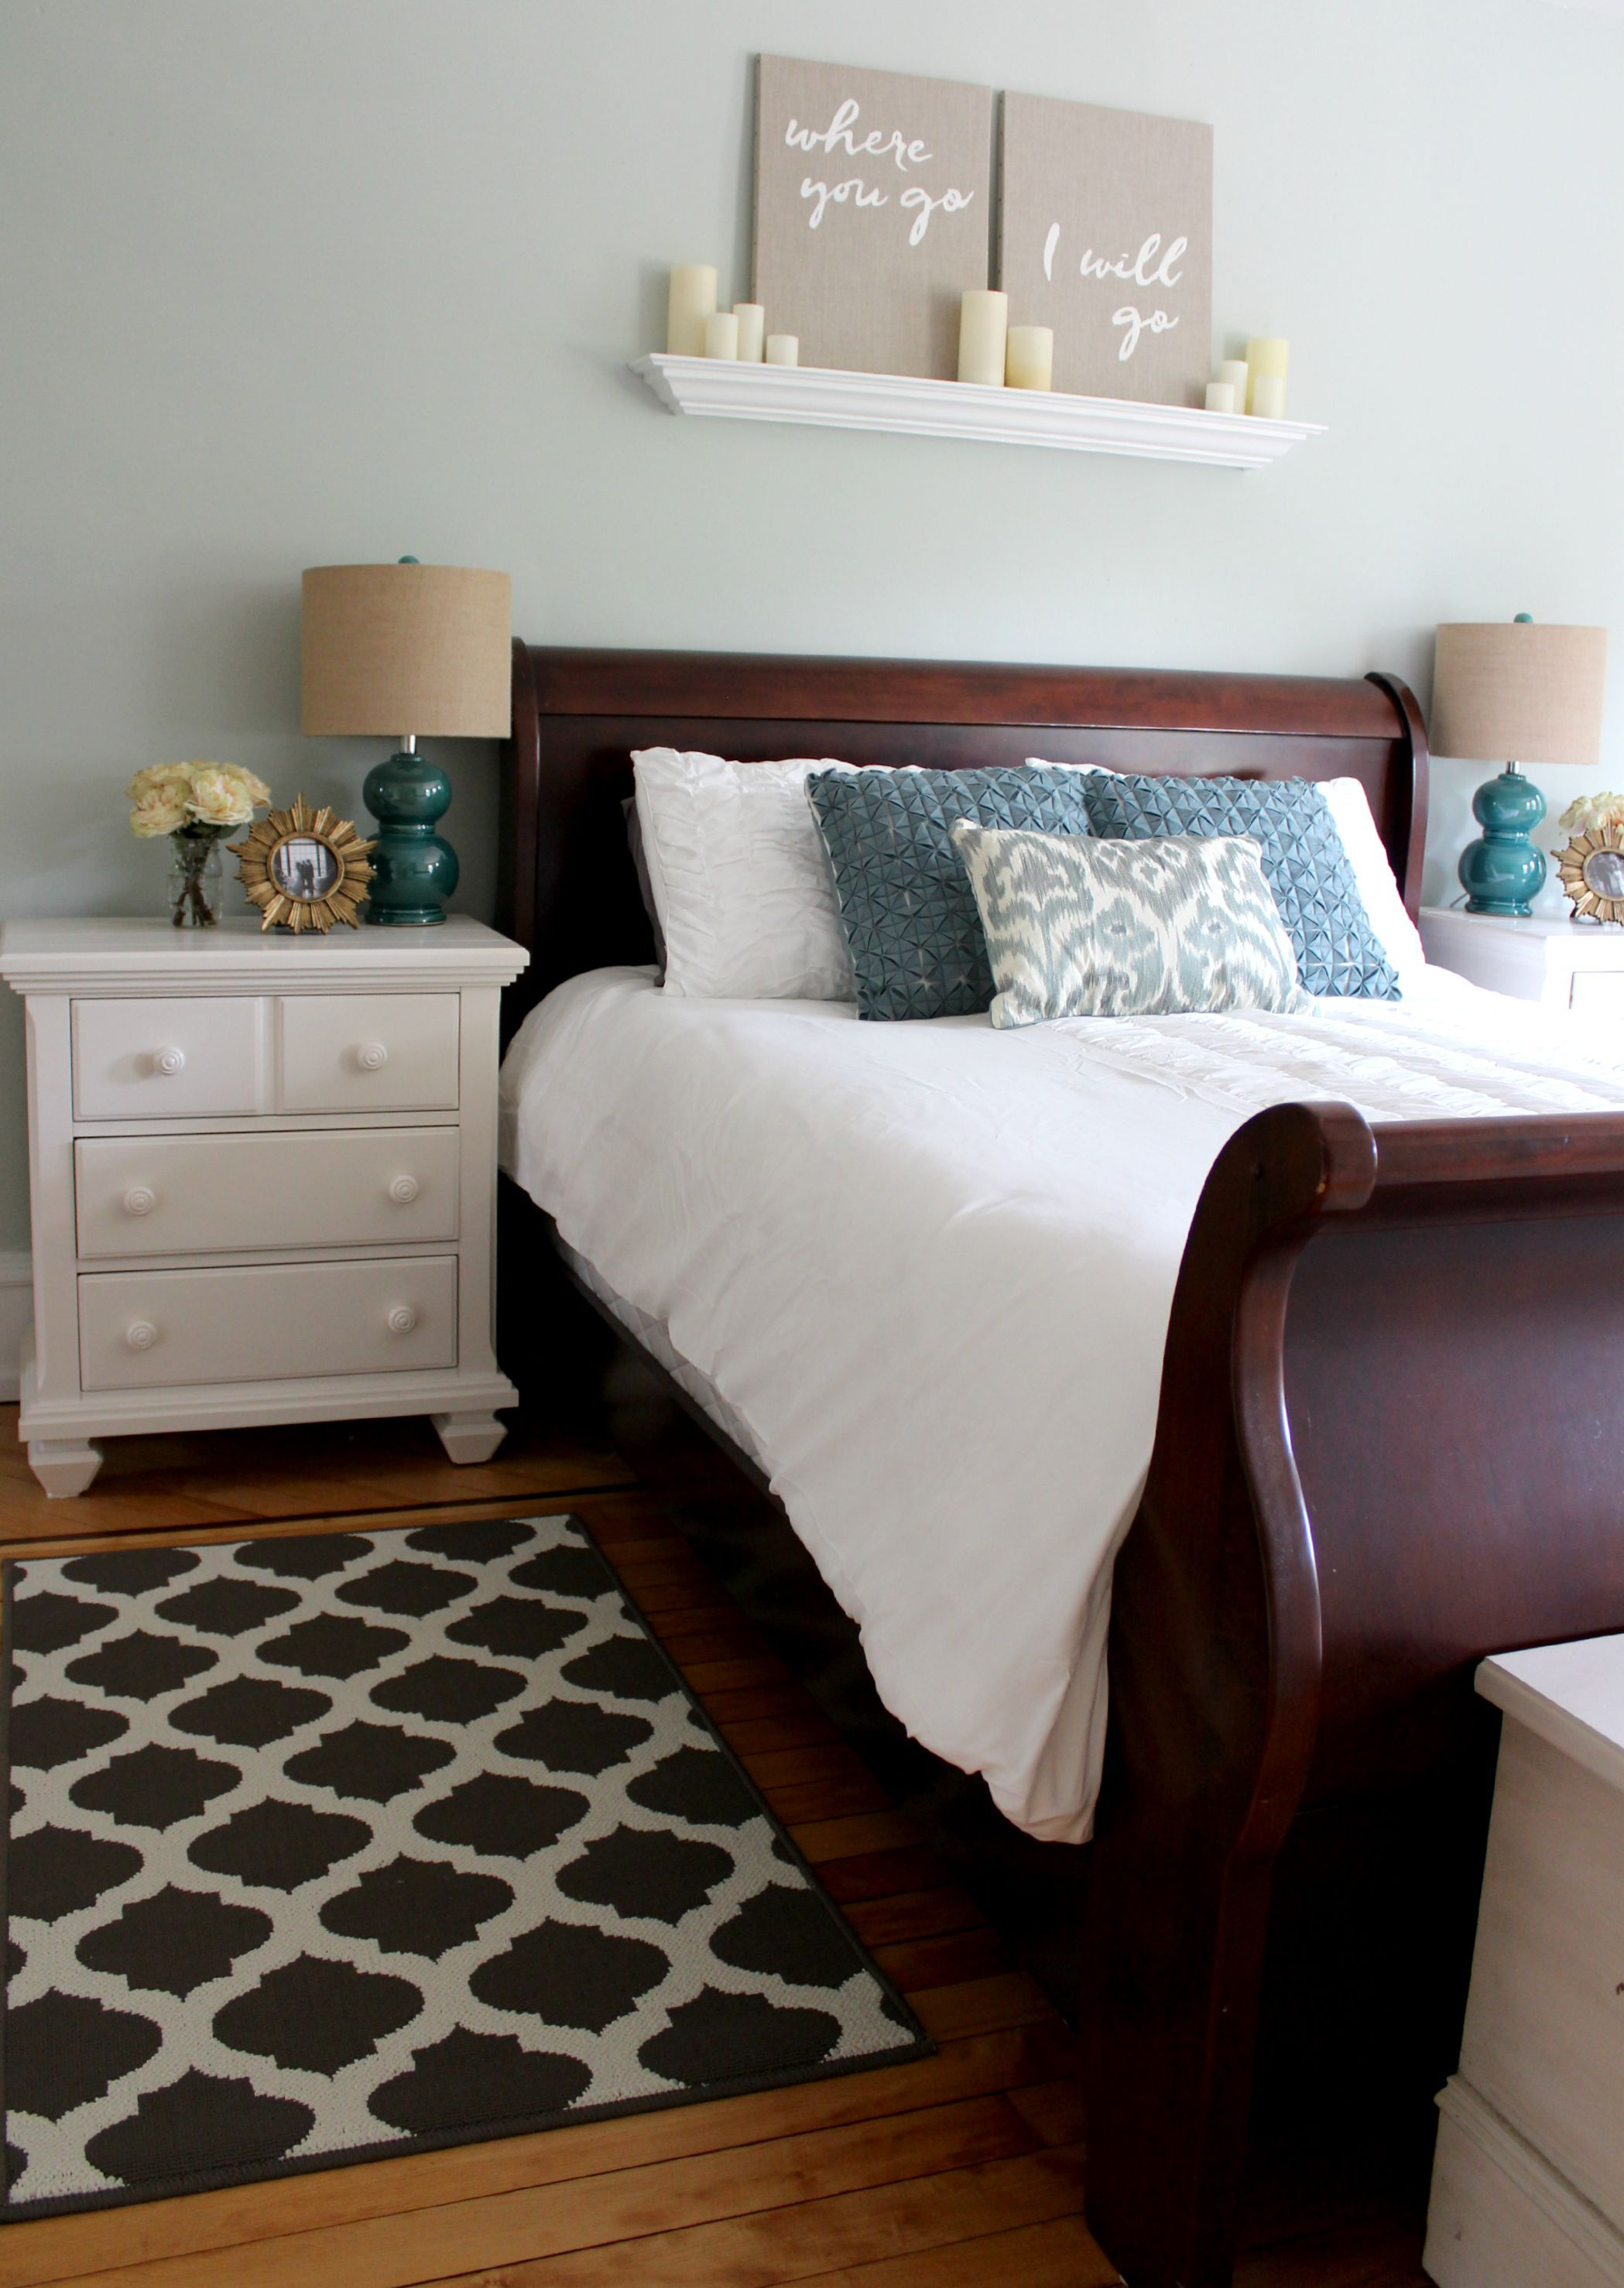 a1d9c31e400 Amazing master bedroom makeover - you won t believe what it looked like  before!